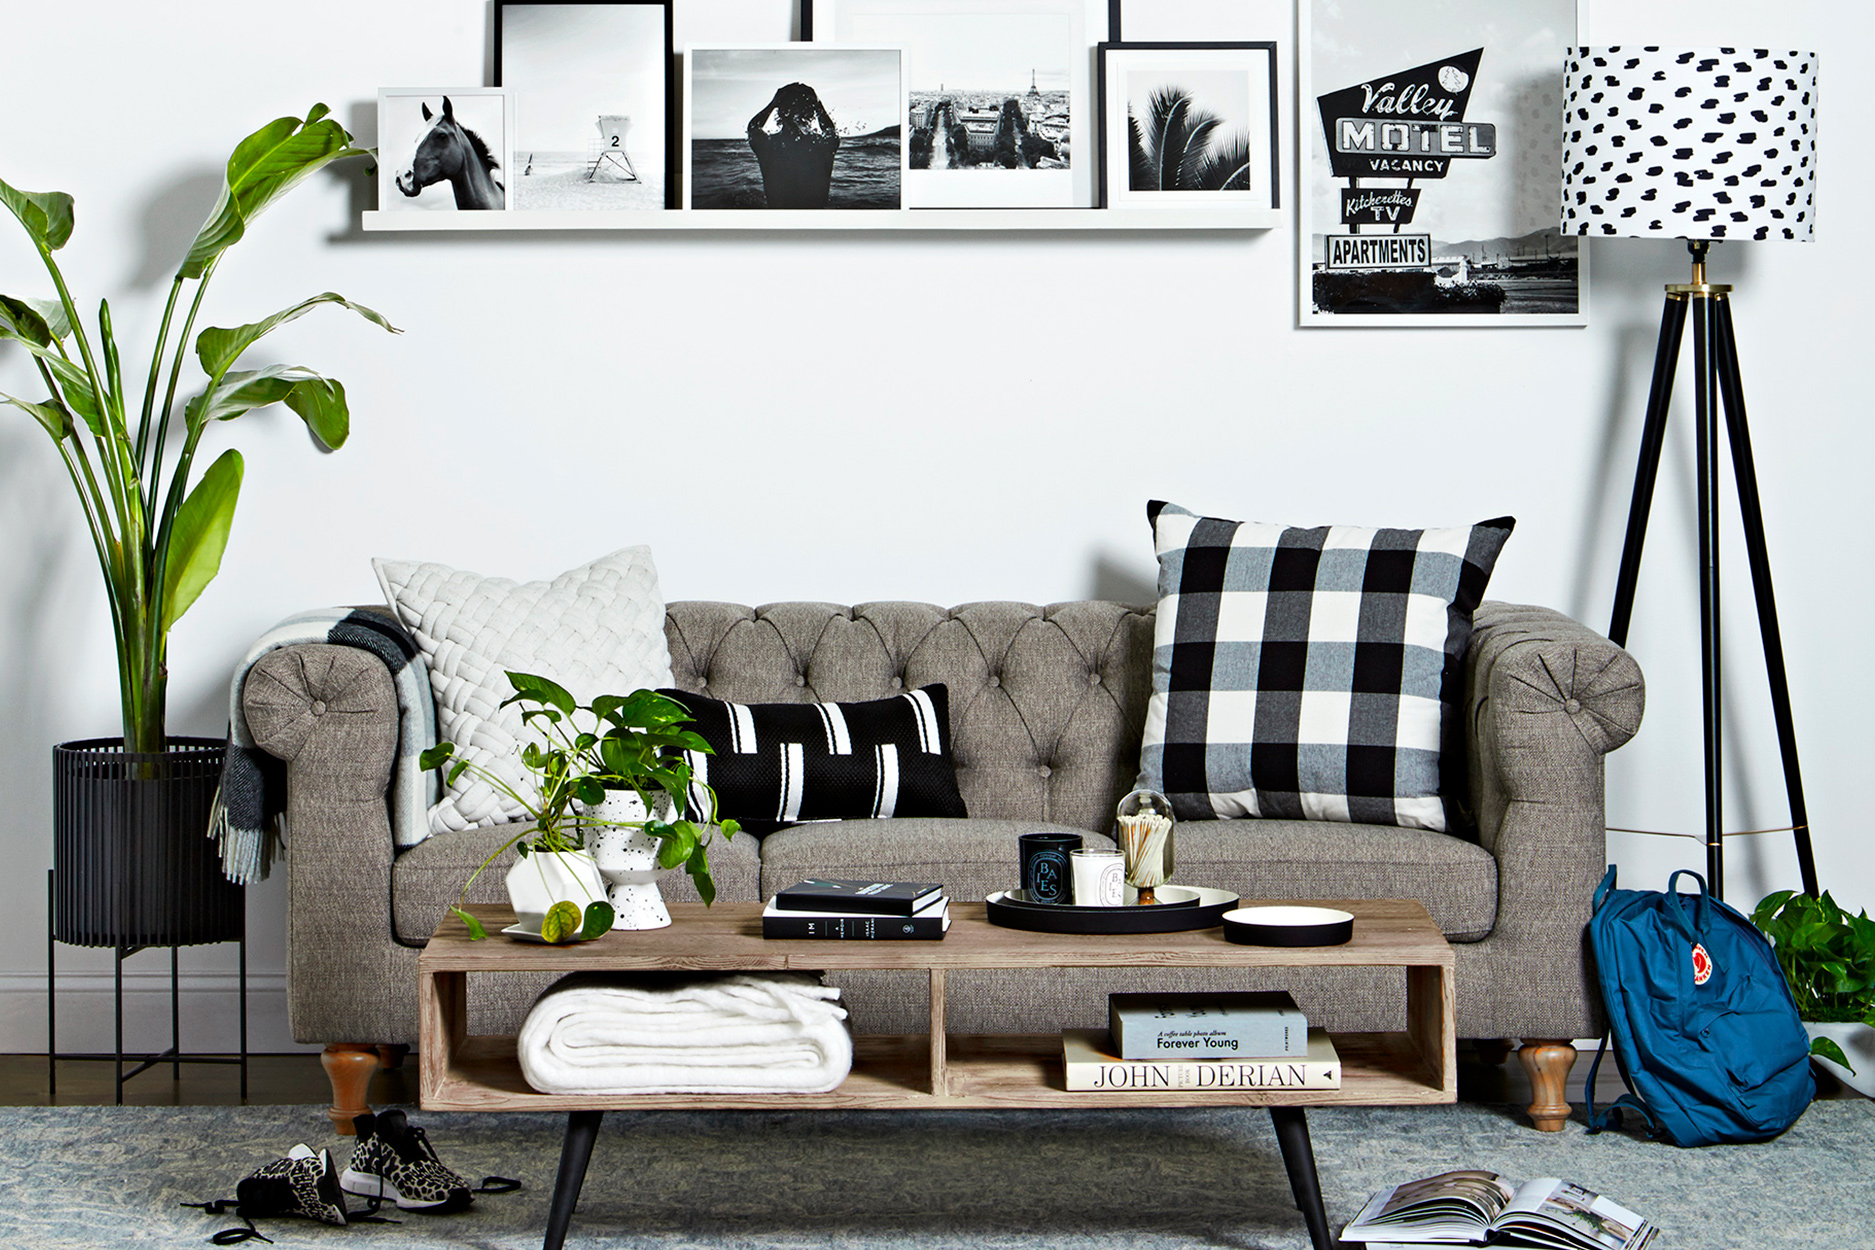 How to Update Your Living Room Without Spending a Fortune